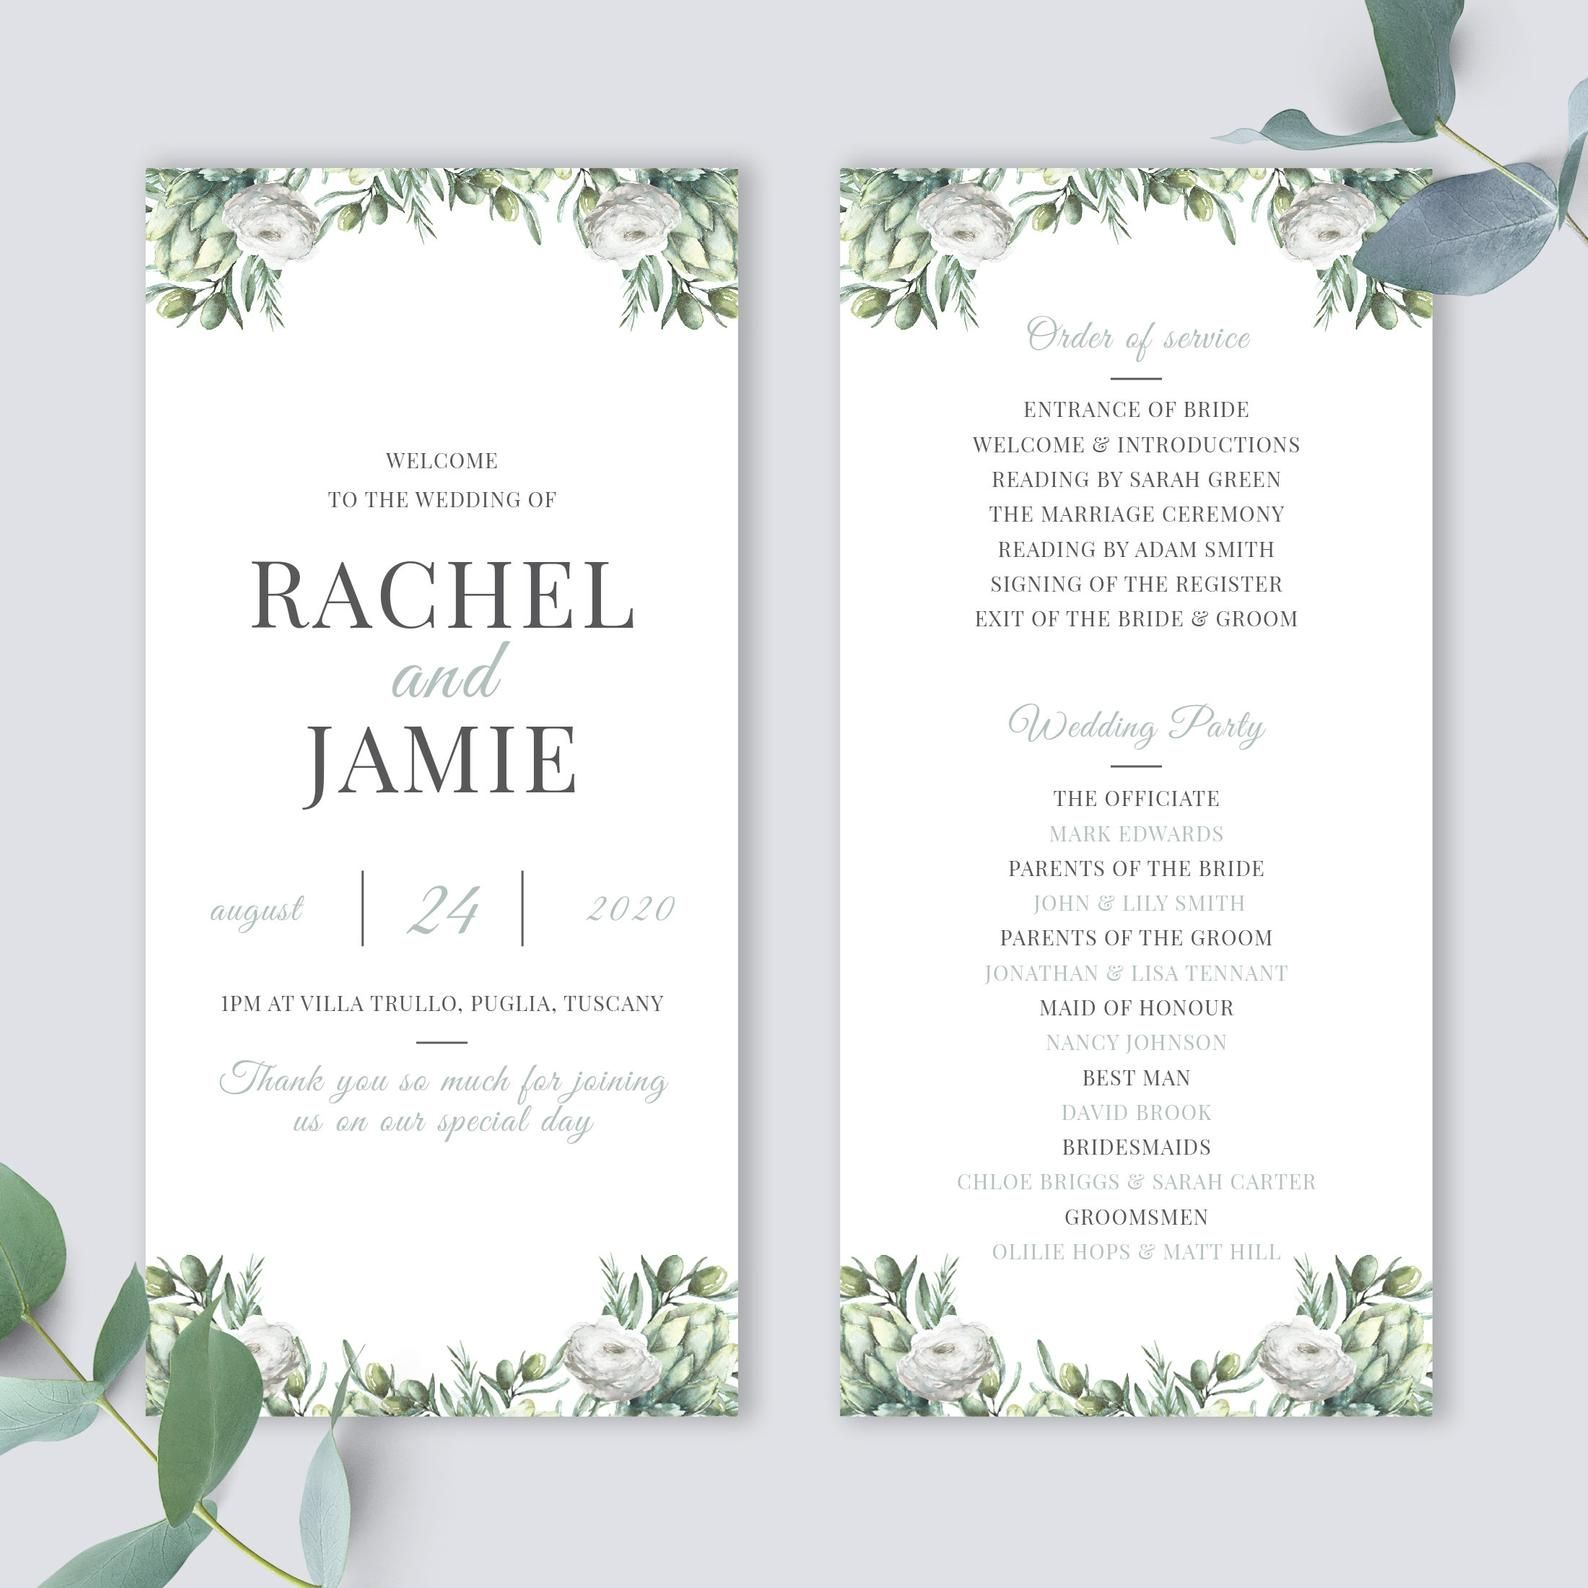 Wedding Program Template Order Of Service Wedding Order Of Etsy In 2021 Wedding Programs Template Wedding Ceremony Programs Wedding Programs